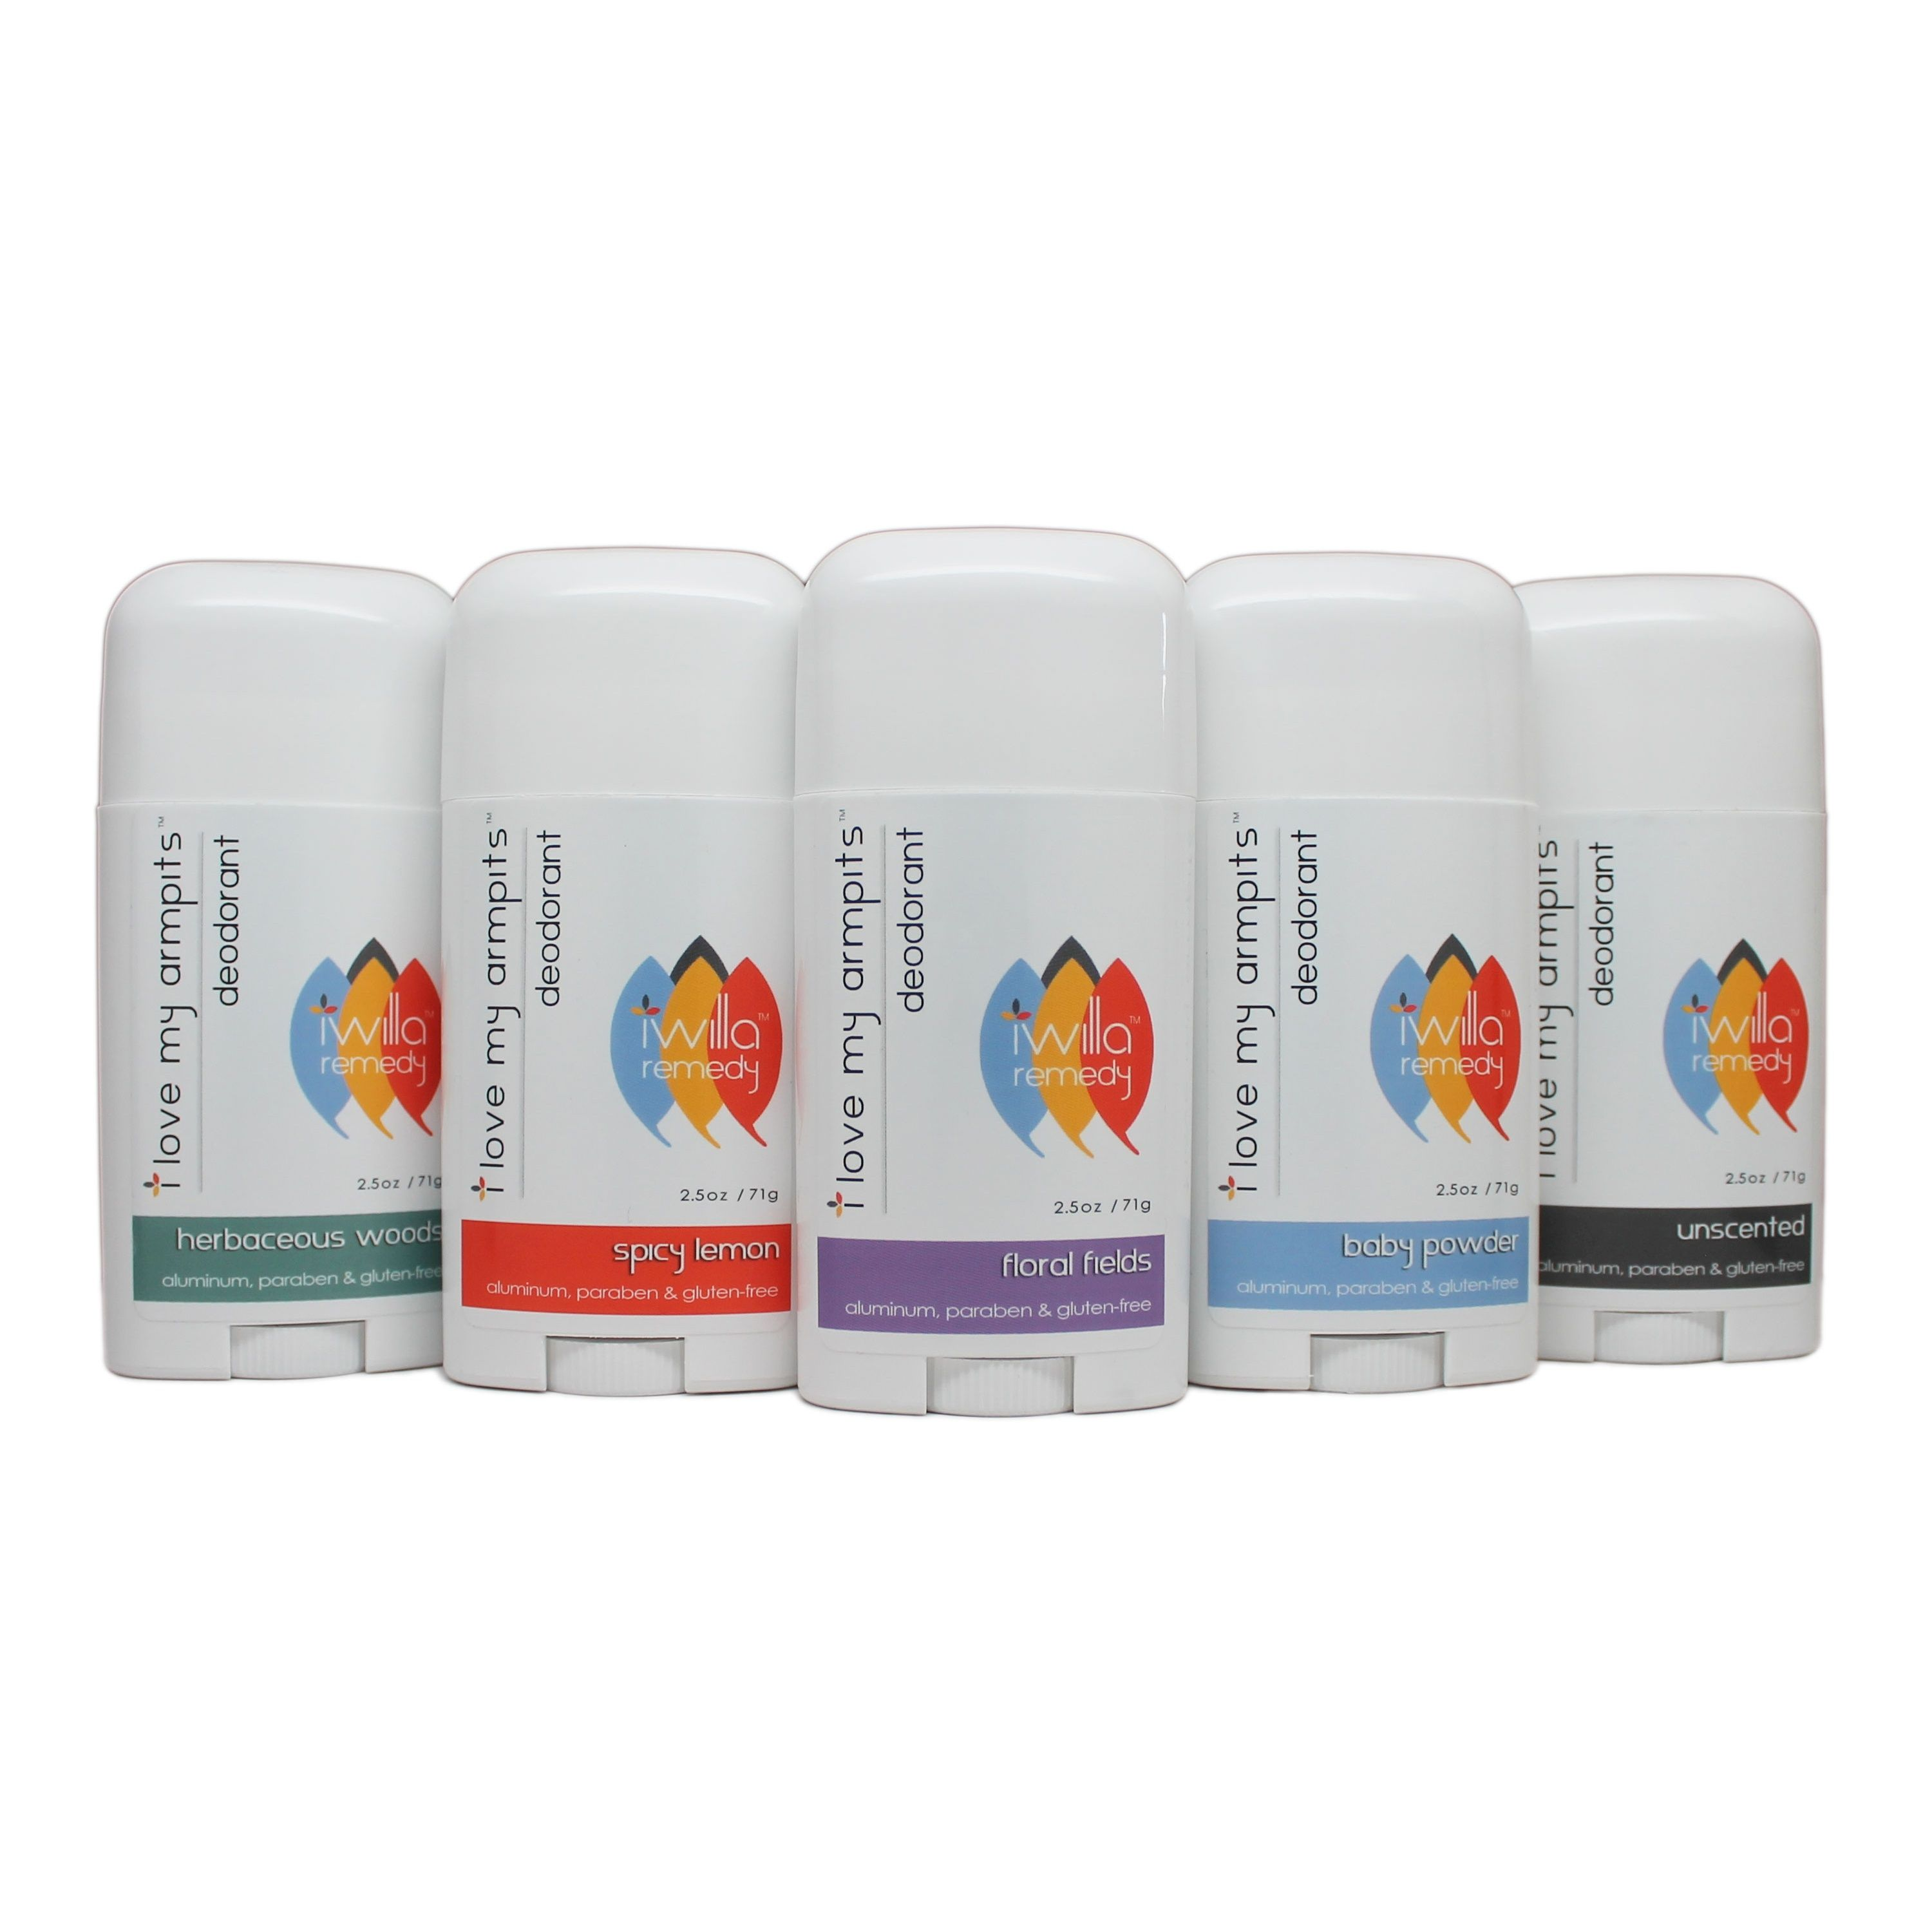 I Love My Armpits Natural Deodorant Baby Powder See List Of Ingredients Natural Deodorant Natural Household Products Baby Powder